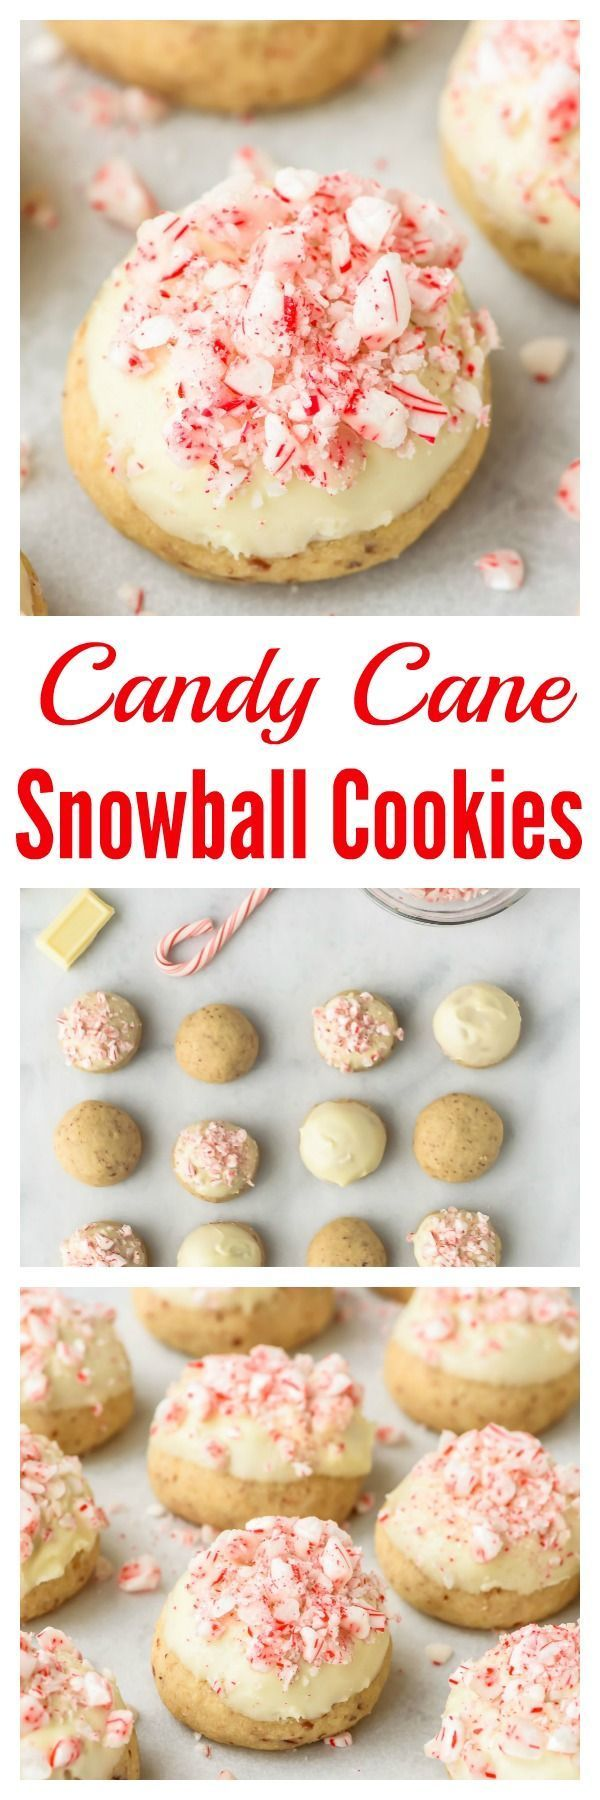 Santa is going to love you for leaving him these melt-in-your-mouth Candy Cane Snowball Cookies! Classic snowball cookies (also called Russian Tea Cakes or Mexican Wedding Cookies) dipped in white chocolate, then topped with crushed peppermint candies. Buttery, addictive, and filled with the best holiday flavors!